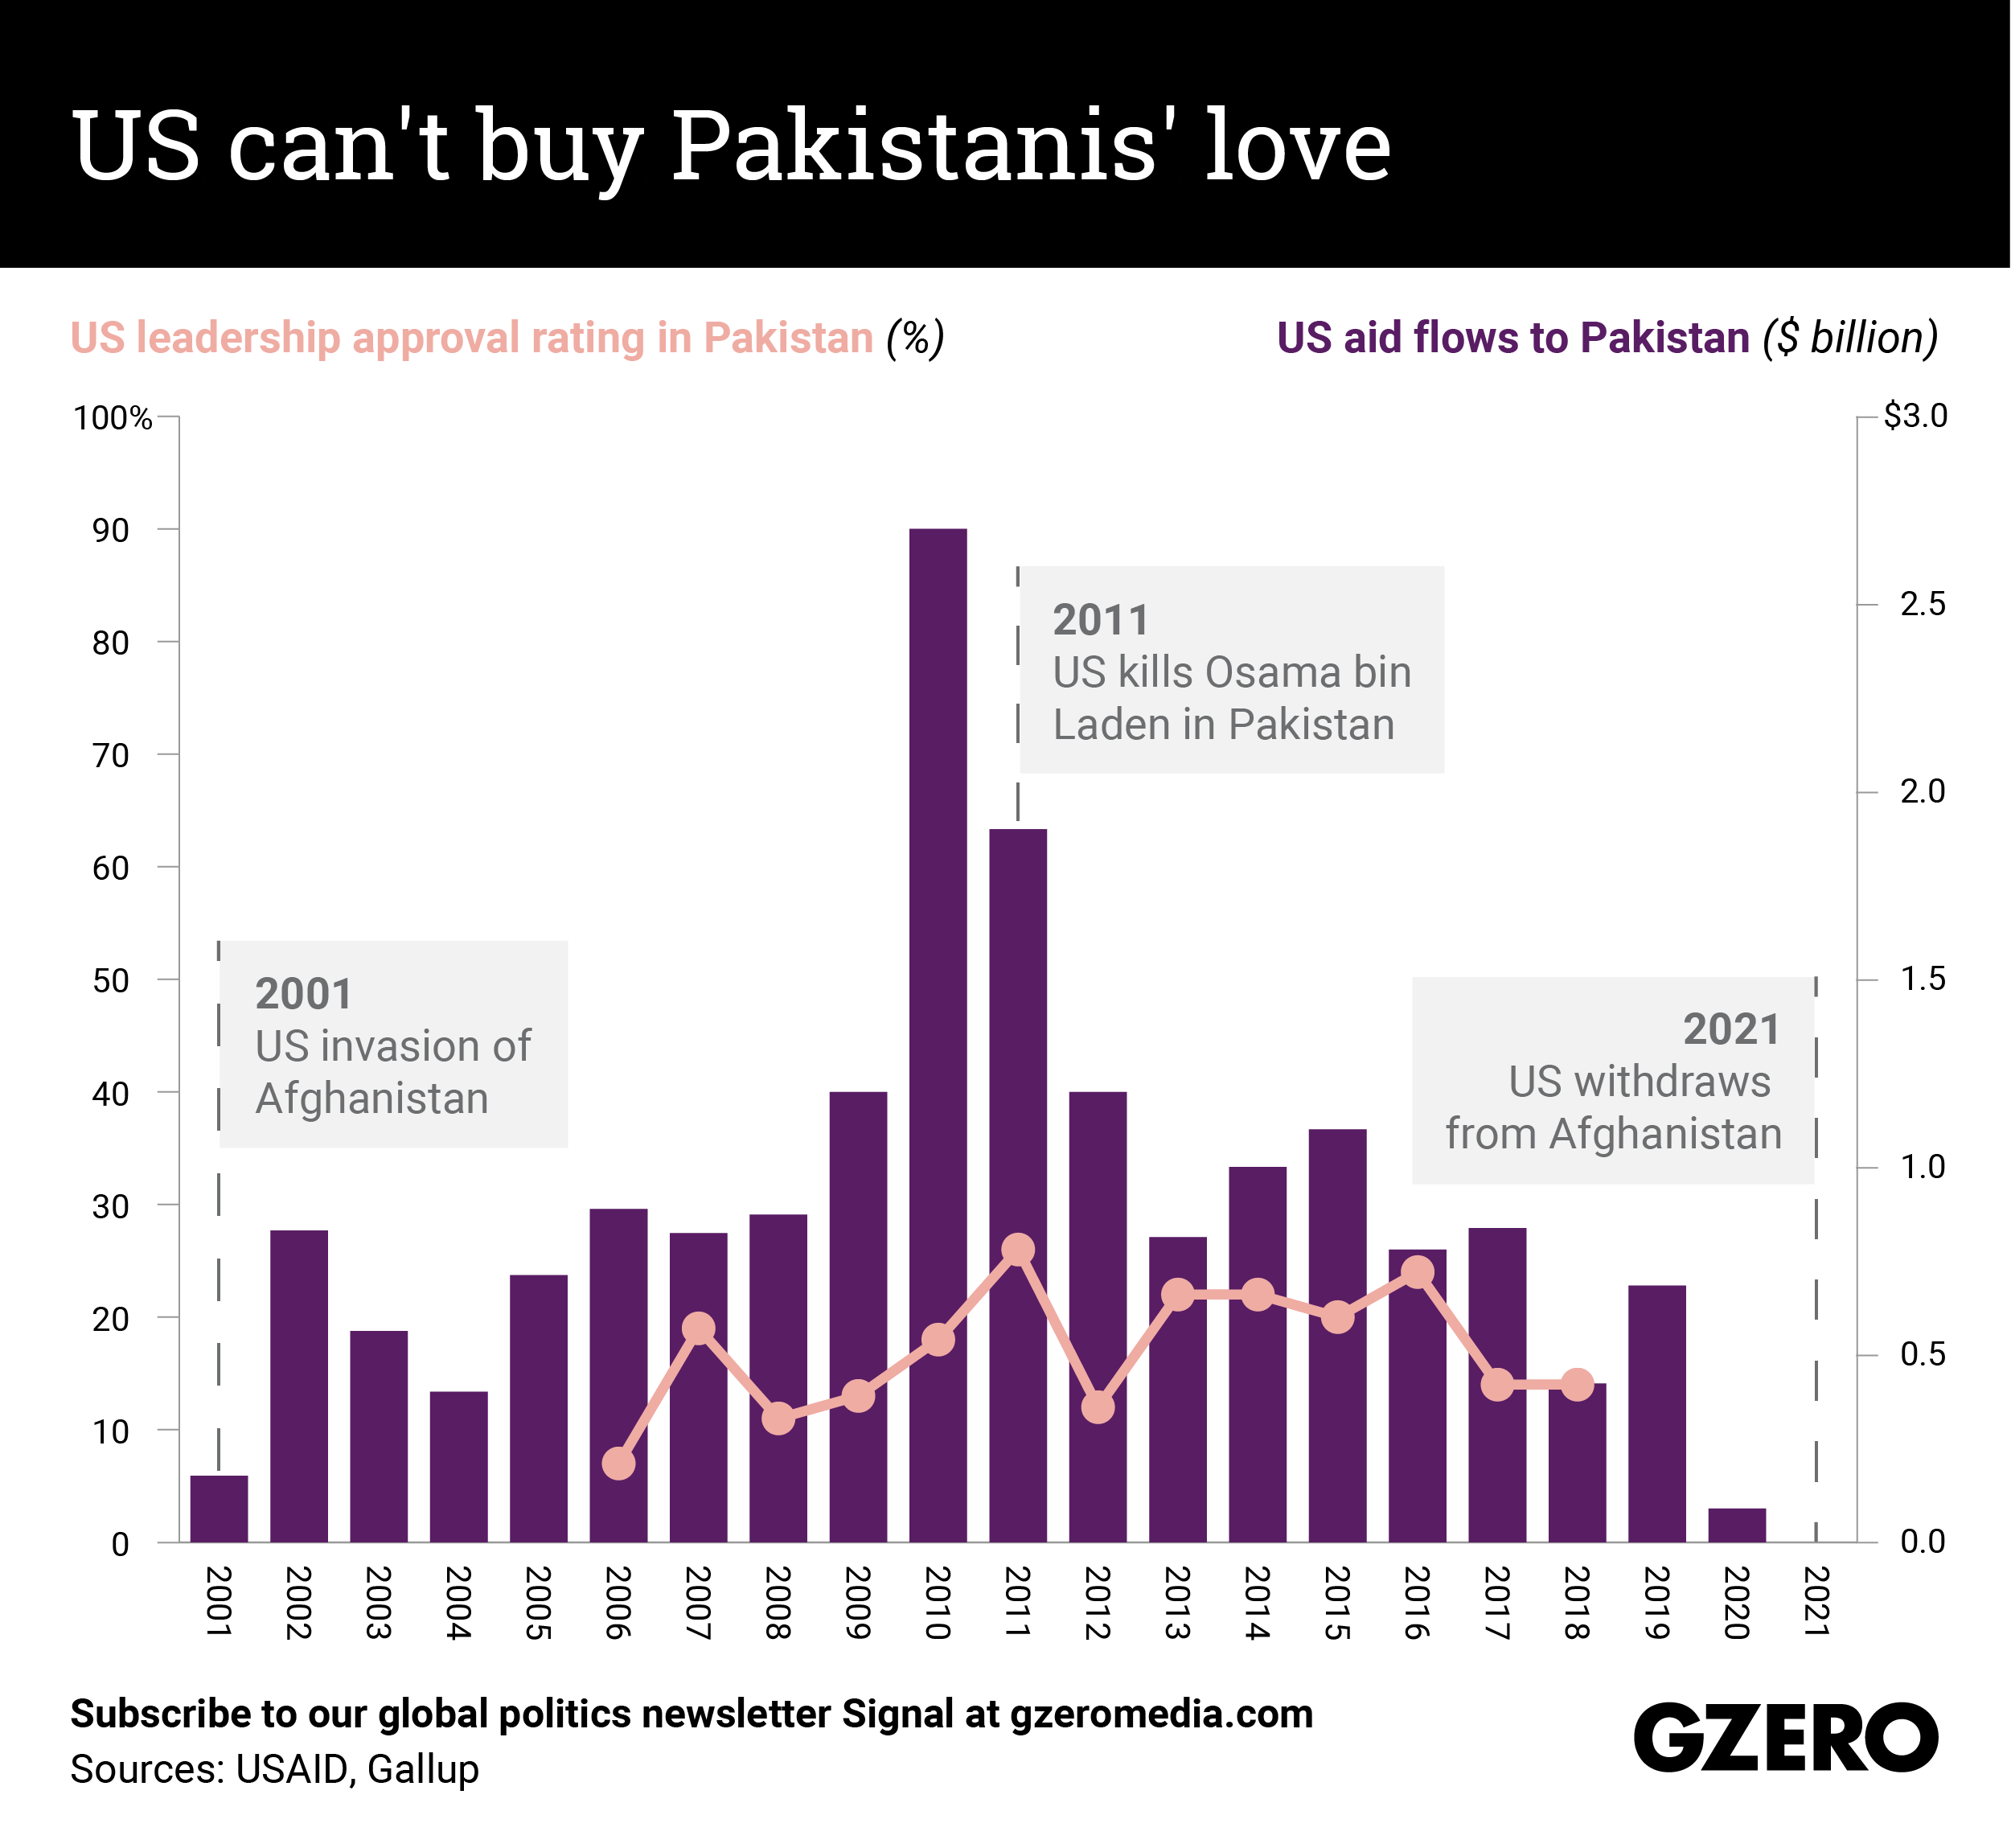 The Graphic Truth: The US can't buy Pakistanis' love